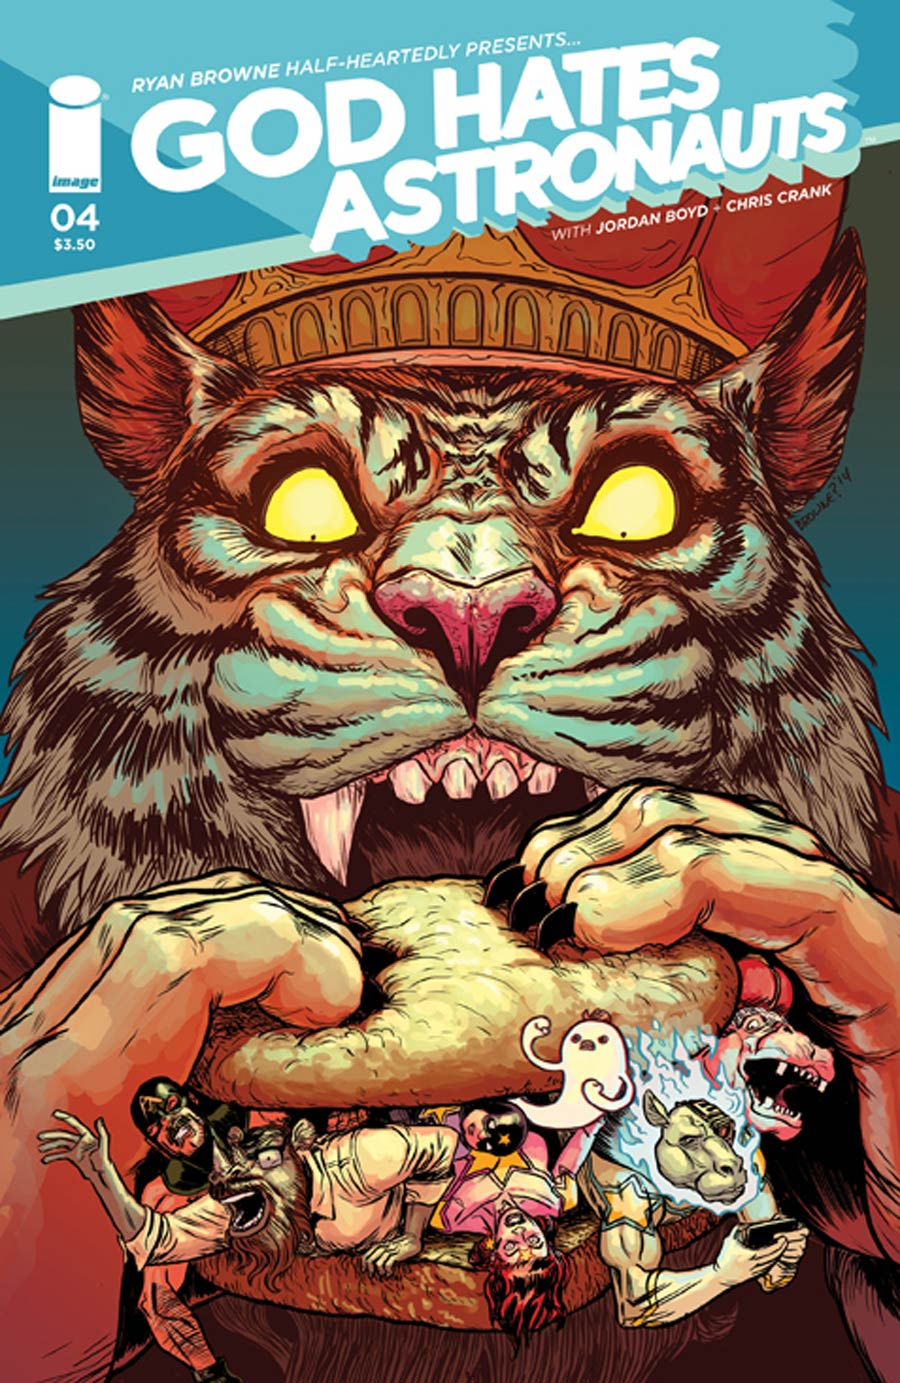 God Hates Astronauts #4 Cover A Ryan Browne